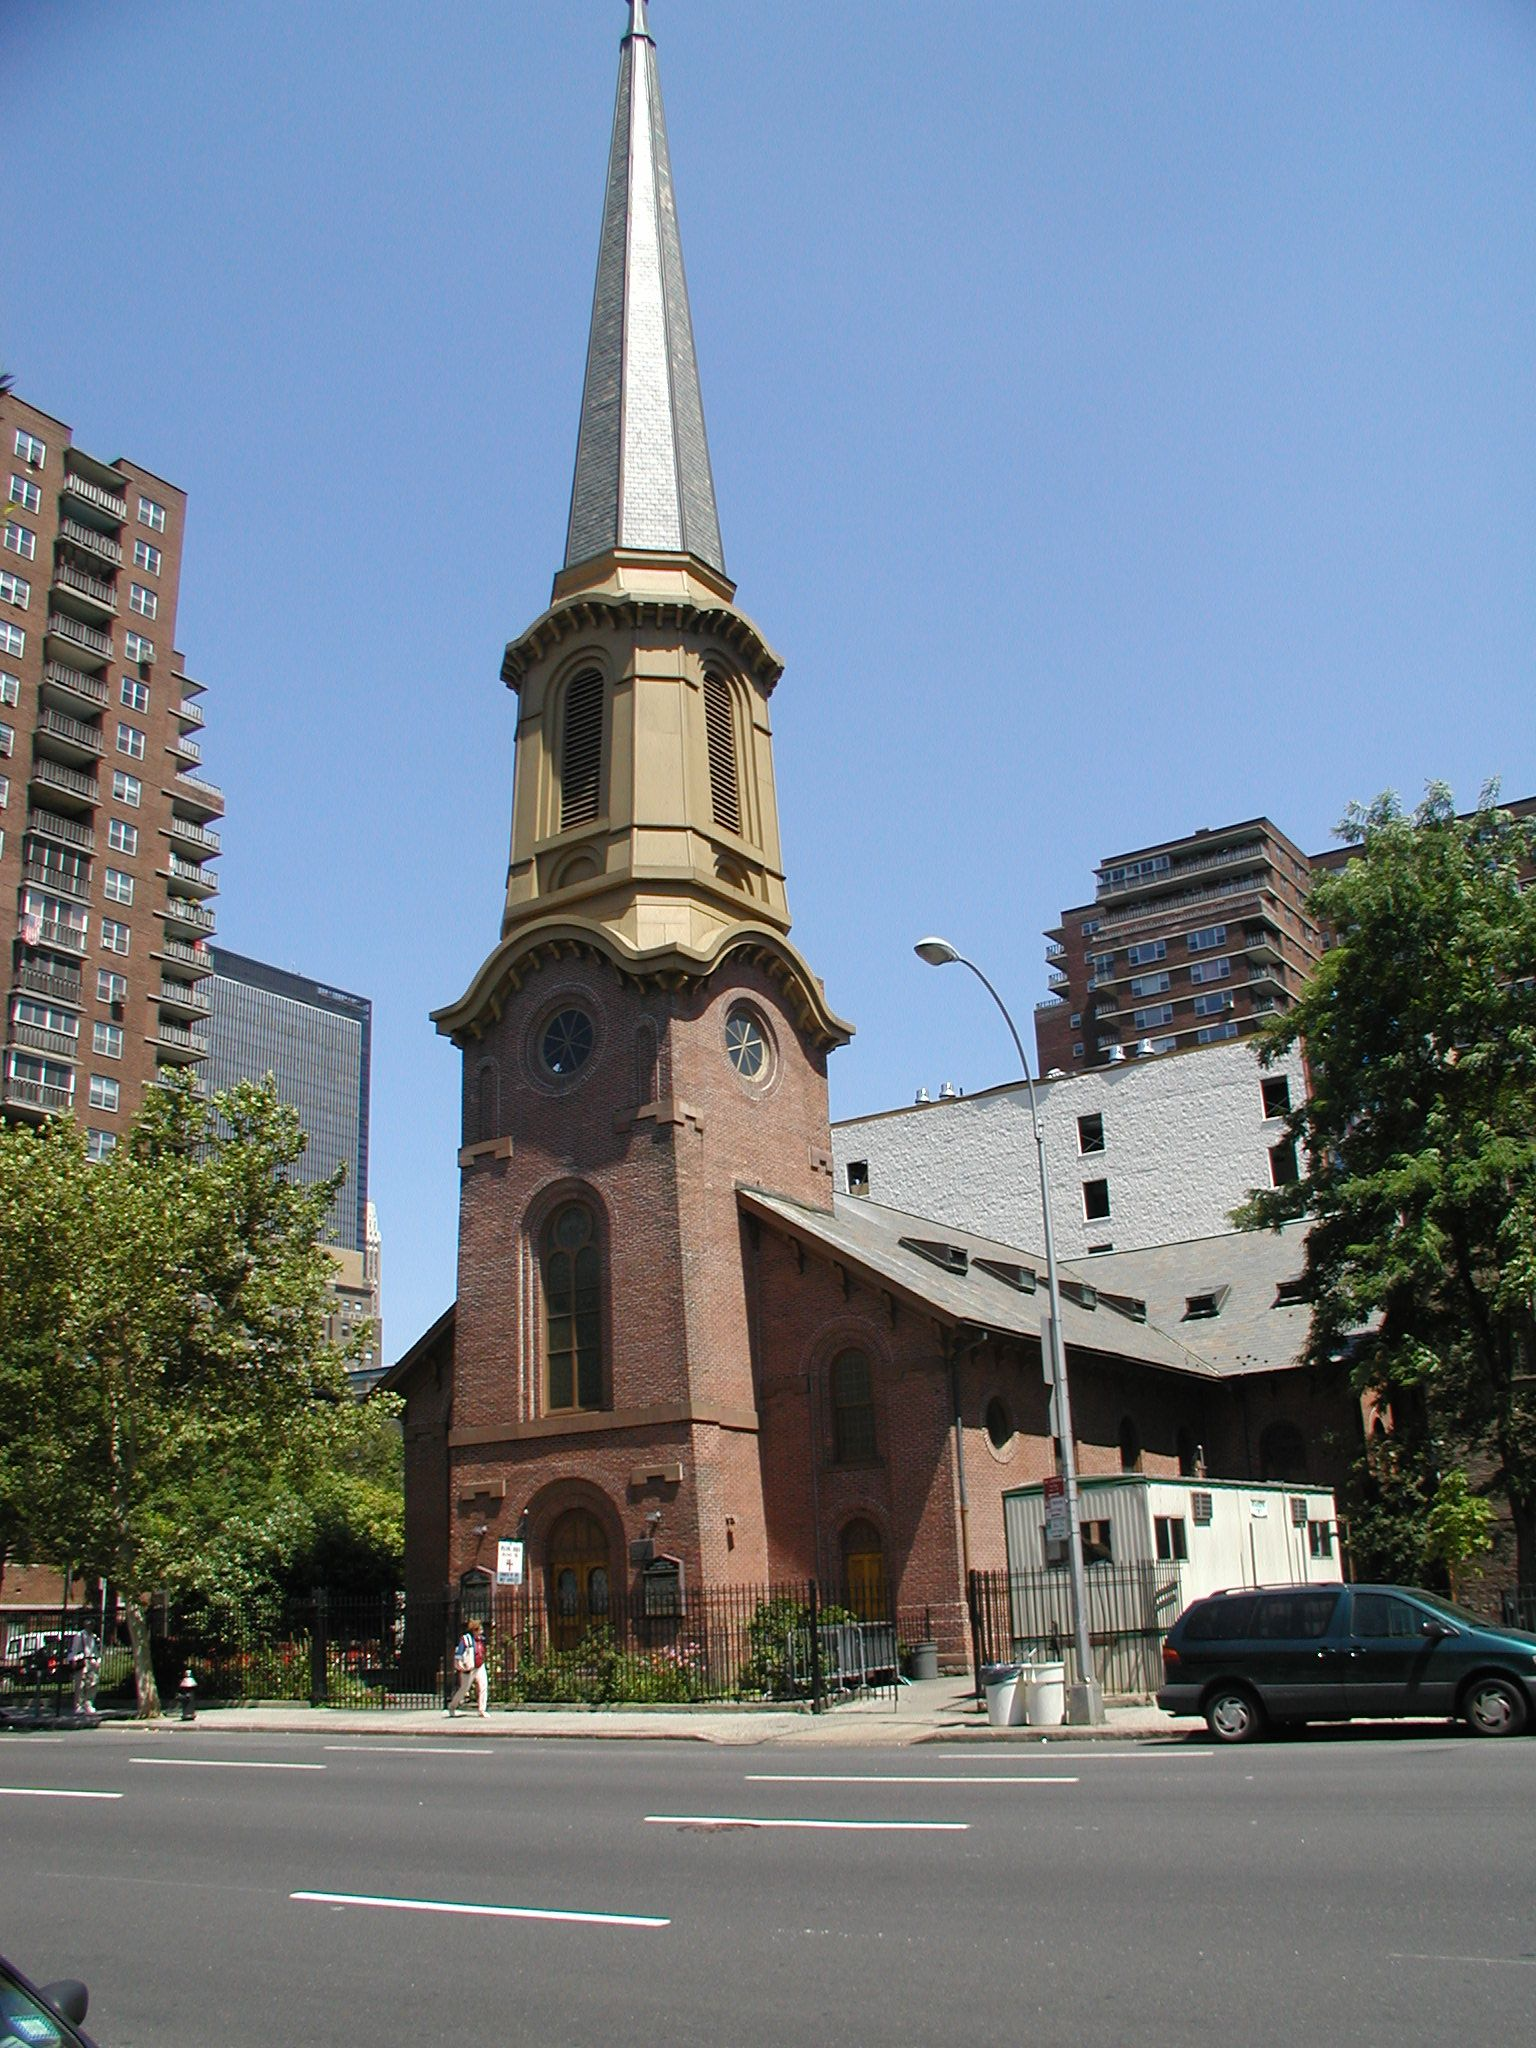 Come visit us in our landmark church on the corner of 9th